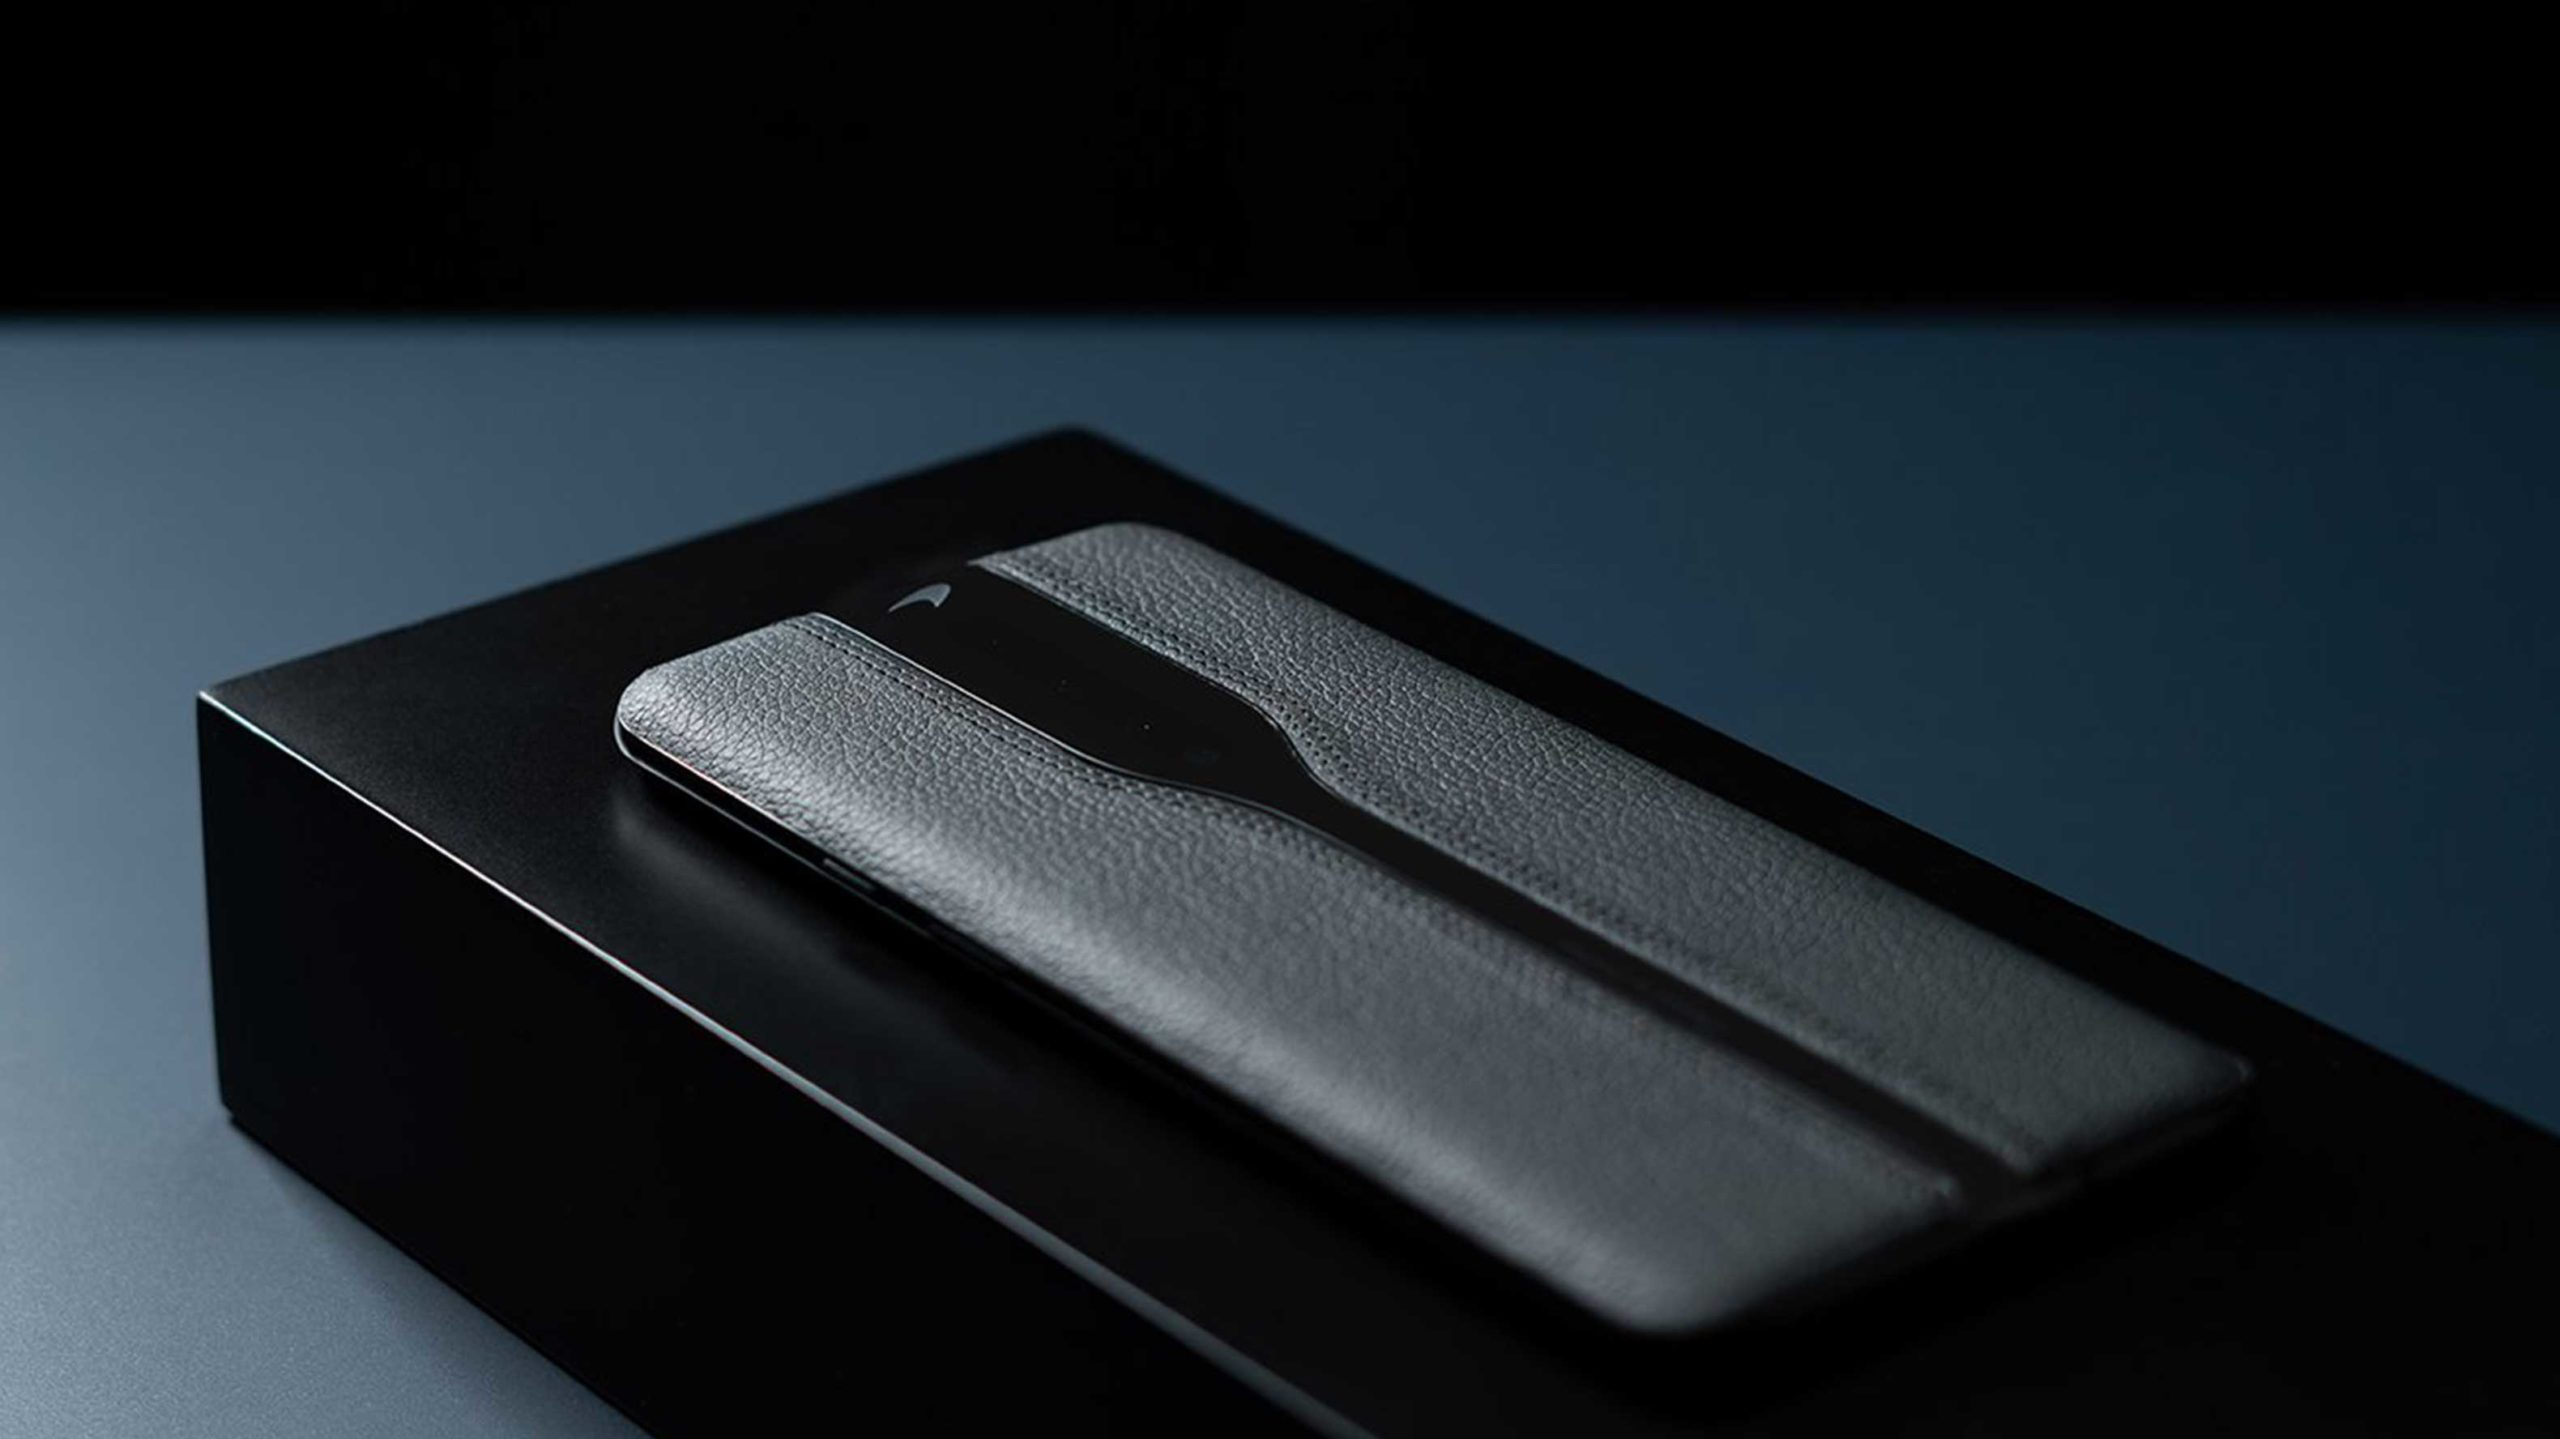 OnePlus shows off black leather concept phones